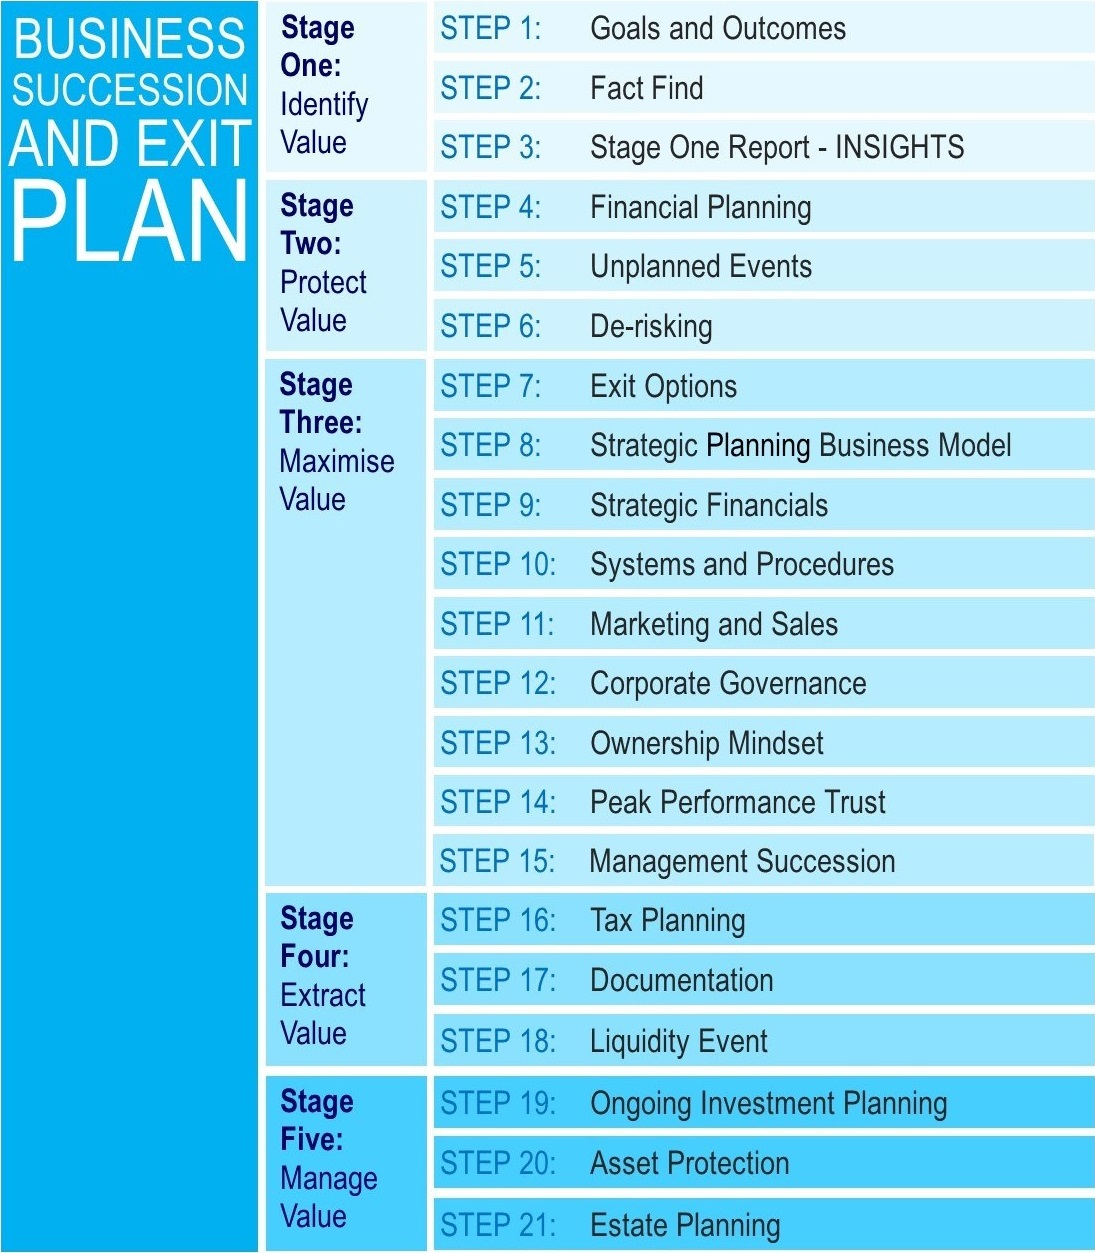 21 step in business succession & exit plan